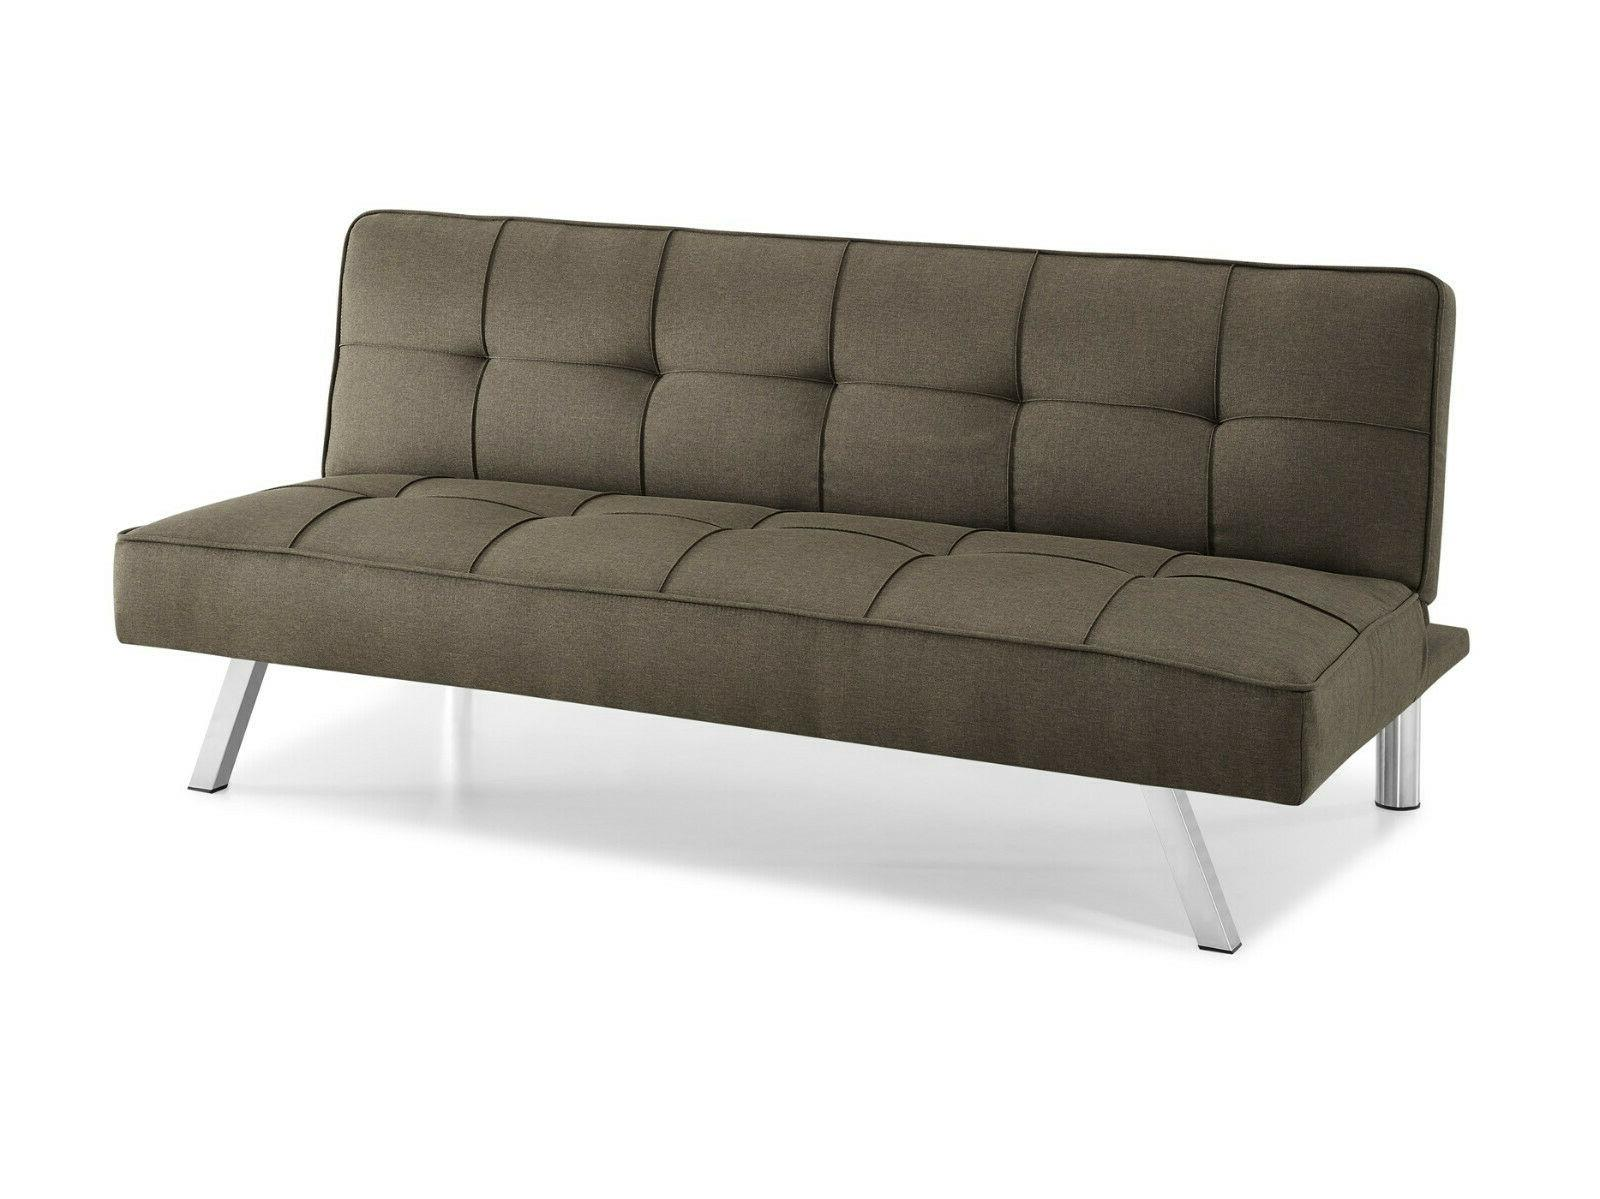 Sleeper Sofa Bed Convertible Couch Living Room Futon Lovesea